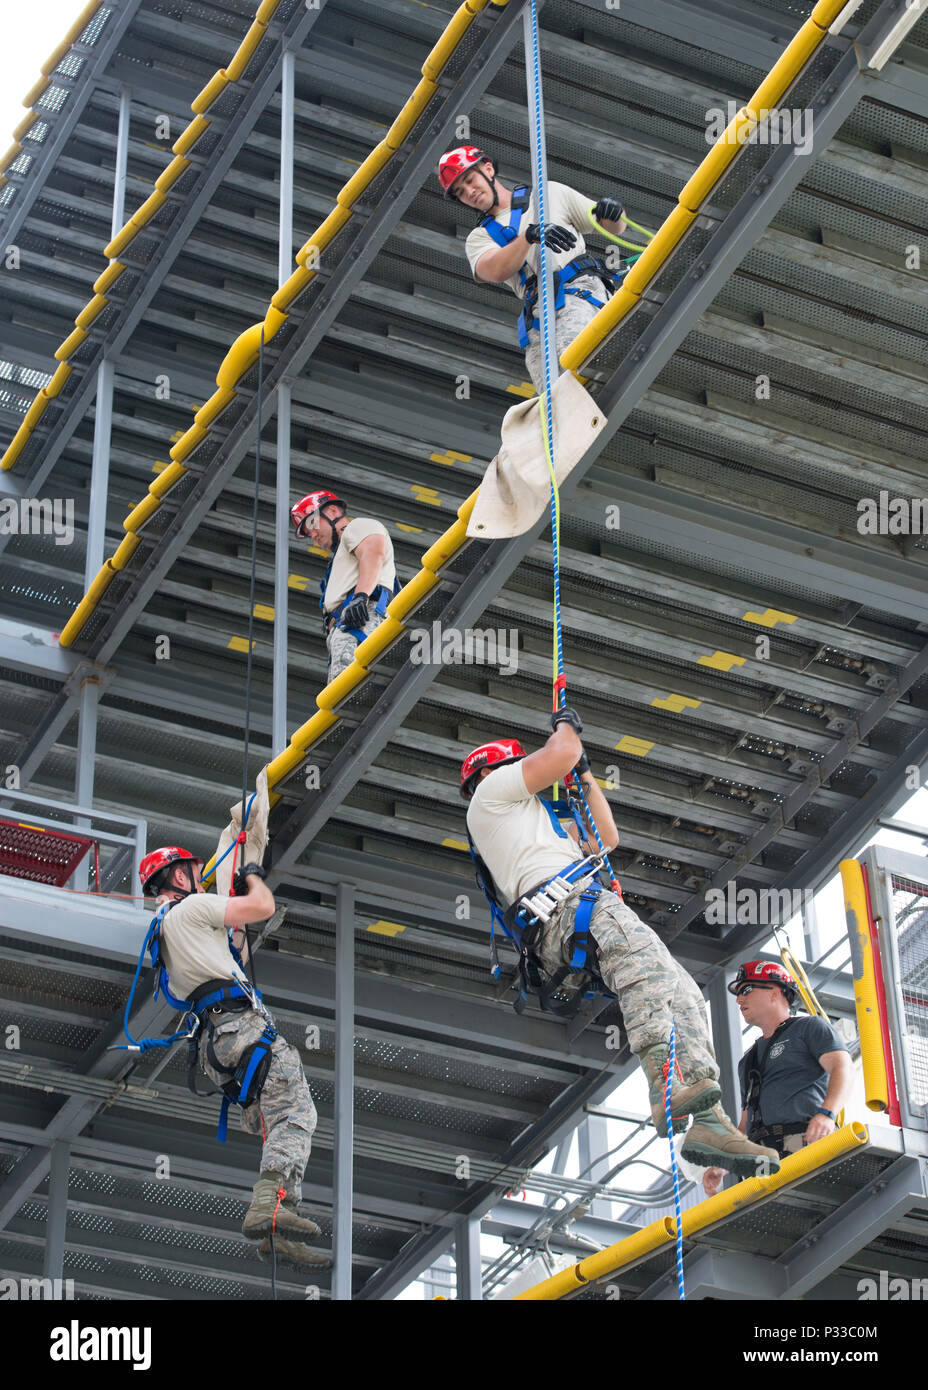 Four firefighters assigned to the 436th Civil Engineer Squadron Fire Department practice climbing and repelling during a Rescue Technician Course Aug. 18, 2016, from a mobile T-tail maintenance stand on Dover Air Force Base, Del. The T-tail stand allowed for a multitude of anchor points and levels to conduct training. (U.S. Air Force photo by Senior Airman Zachary Cacicia) - Stock Image